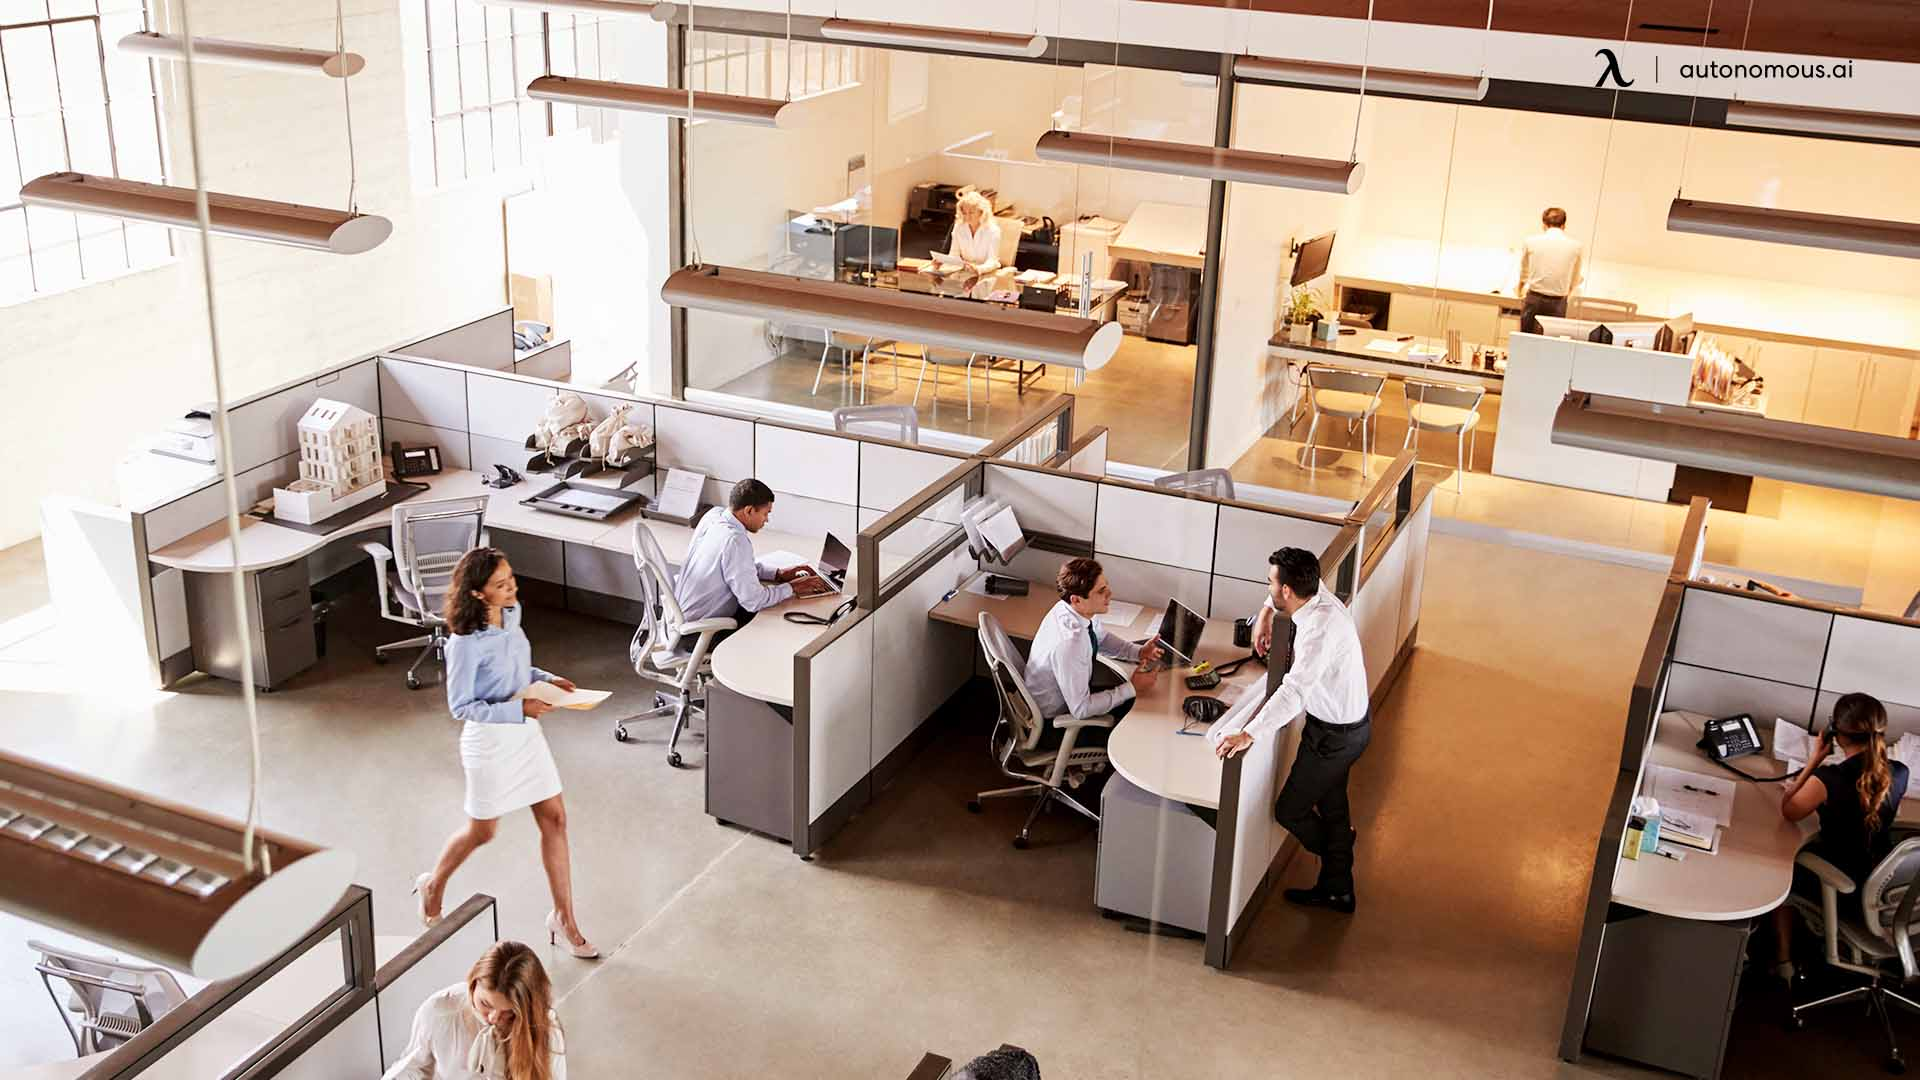 mbrace the Space as It Is: Work Together